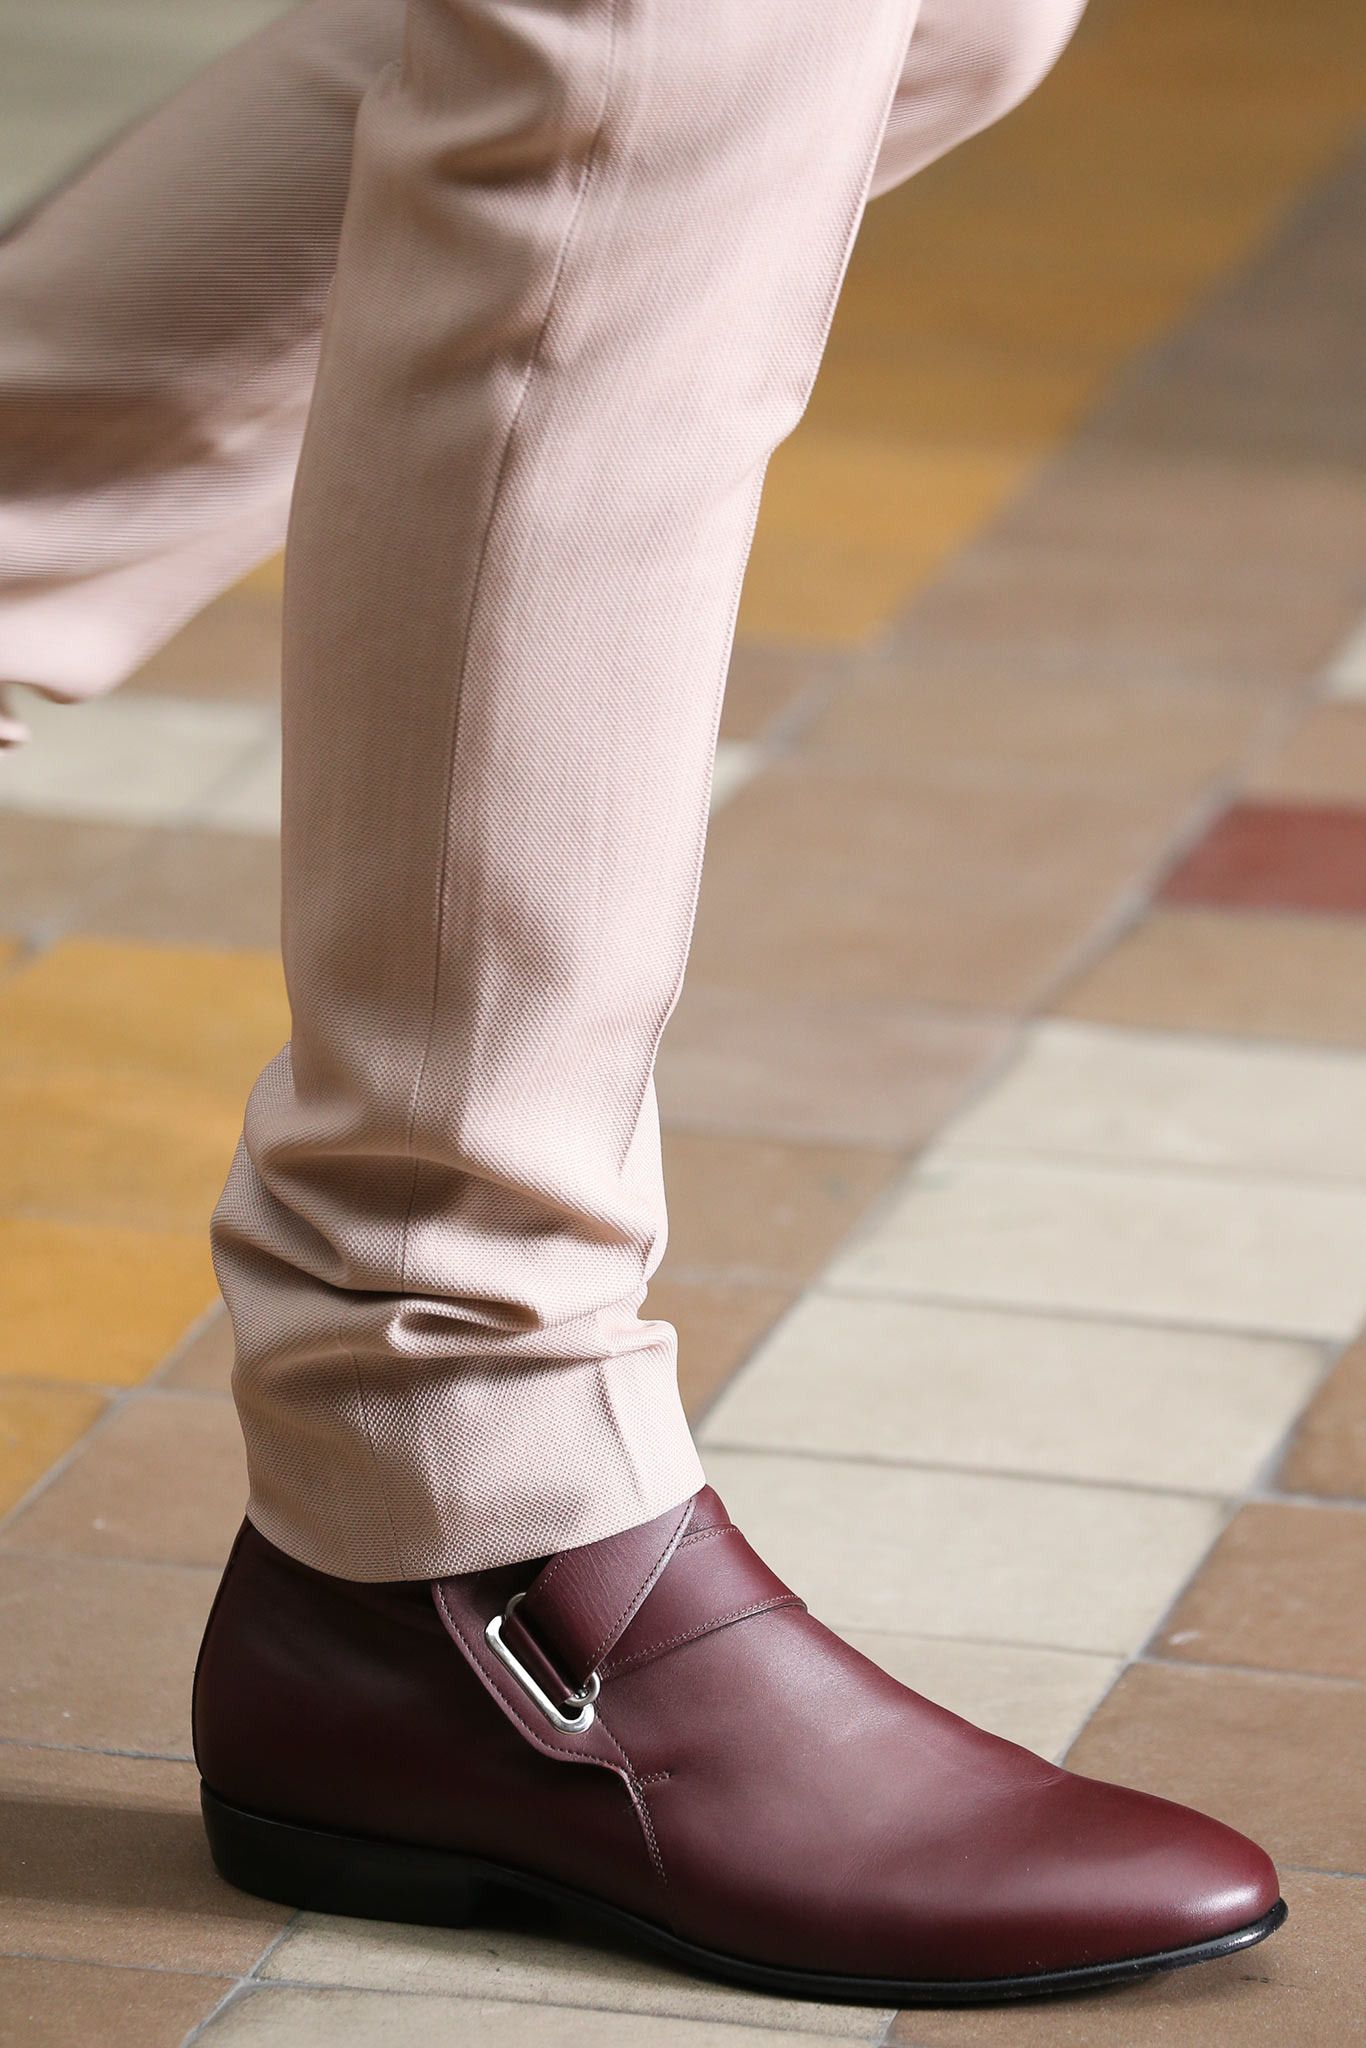 shoe style is called  monk  - I find them very versatile and smooth  looking. this cut of pant is a little young less conservative for a  business setting 8955b7400